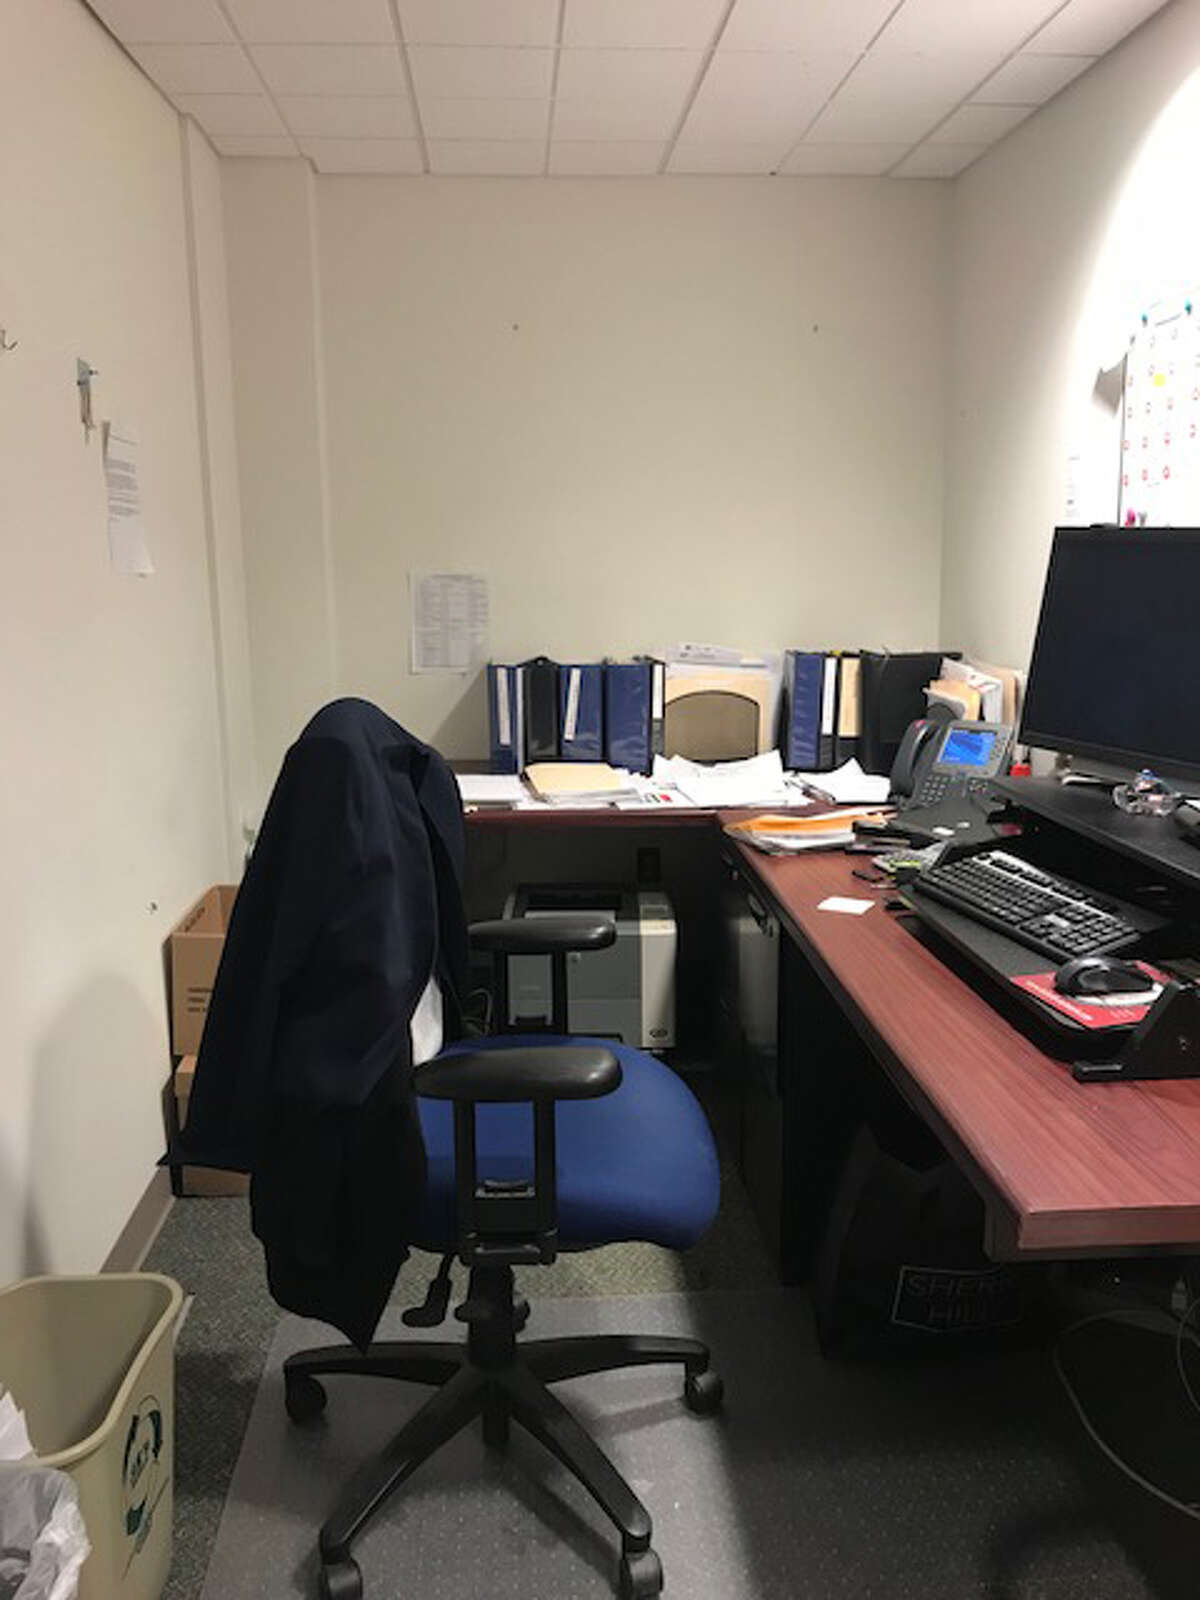 Kimberly Schiavone, a DCJS employee, was transferred against her wishes and ordered to take this office that was previously used as a closet after she cooperated in a sexual harassment investigation last year.